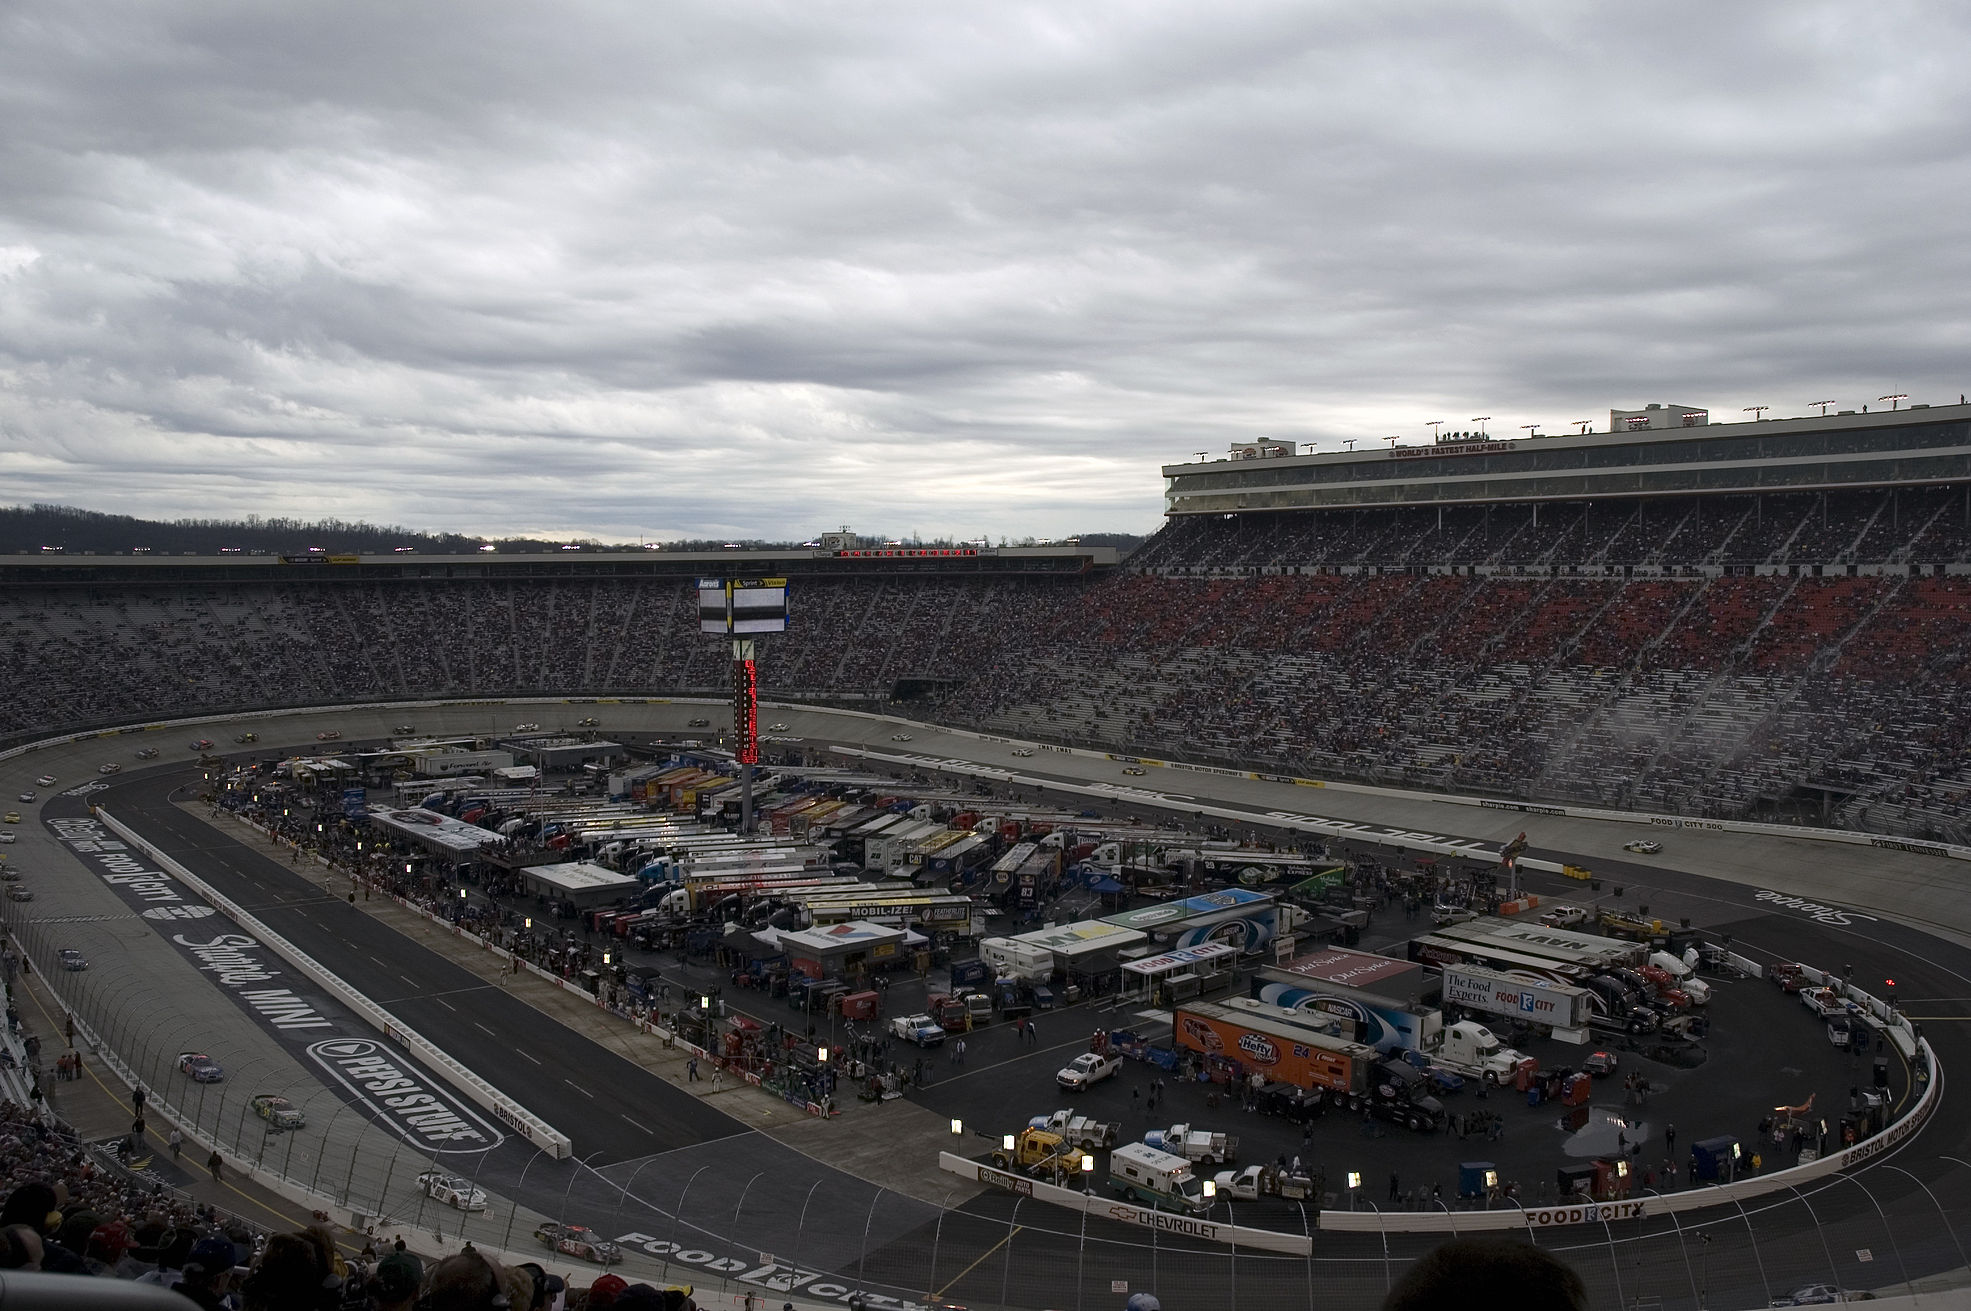 Bristol Motor Speedway The Race Track Where The Race Was